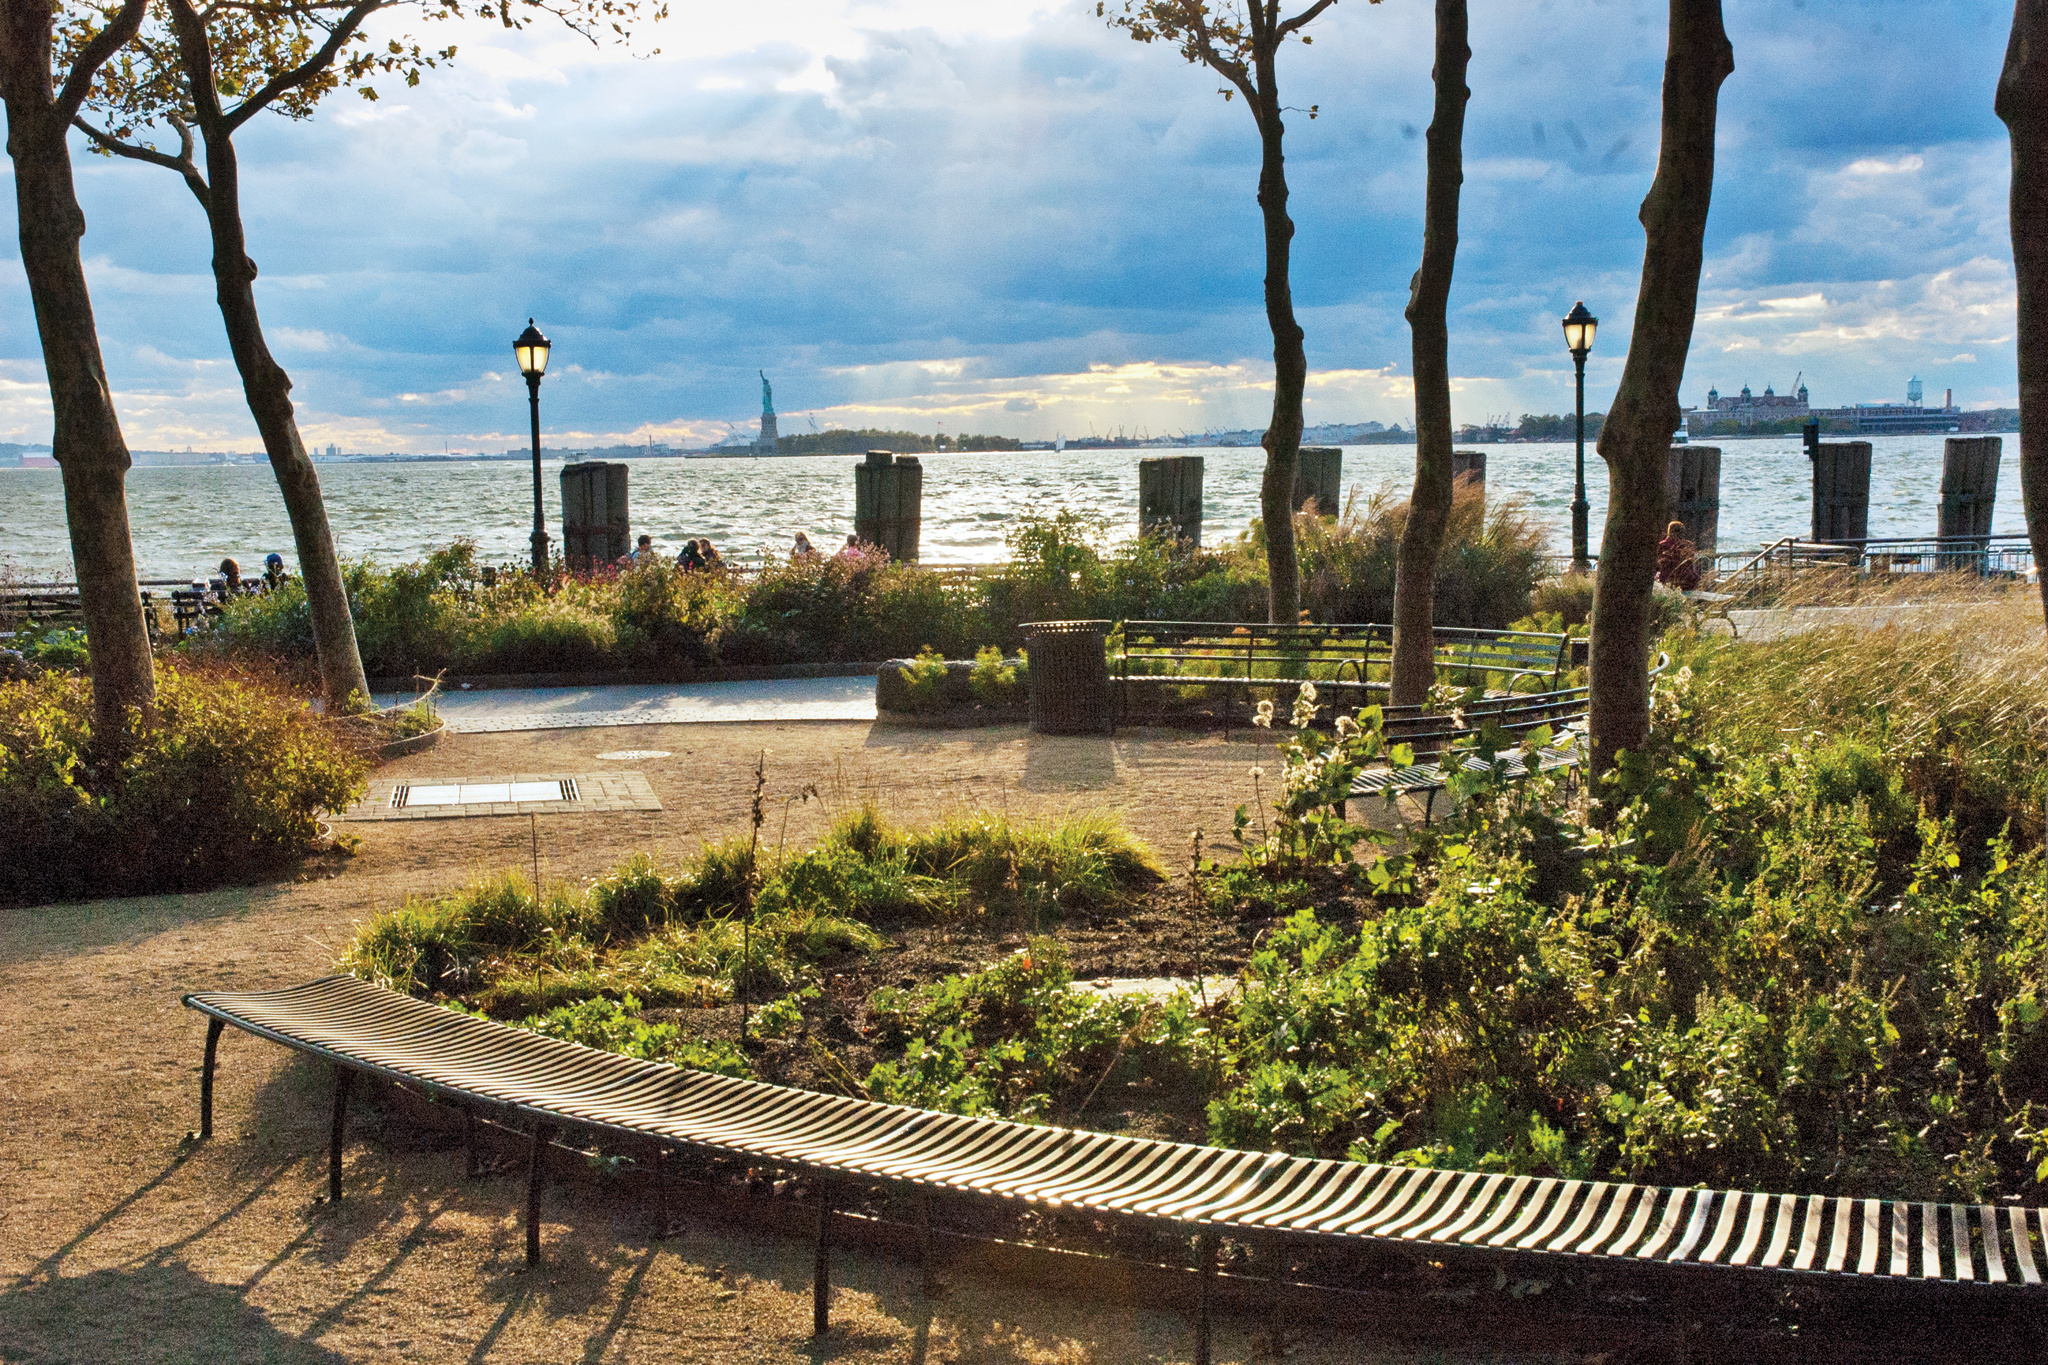 74. Commune with nature in Battery Park